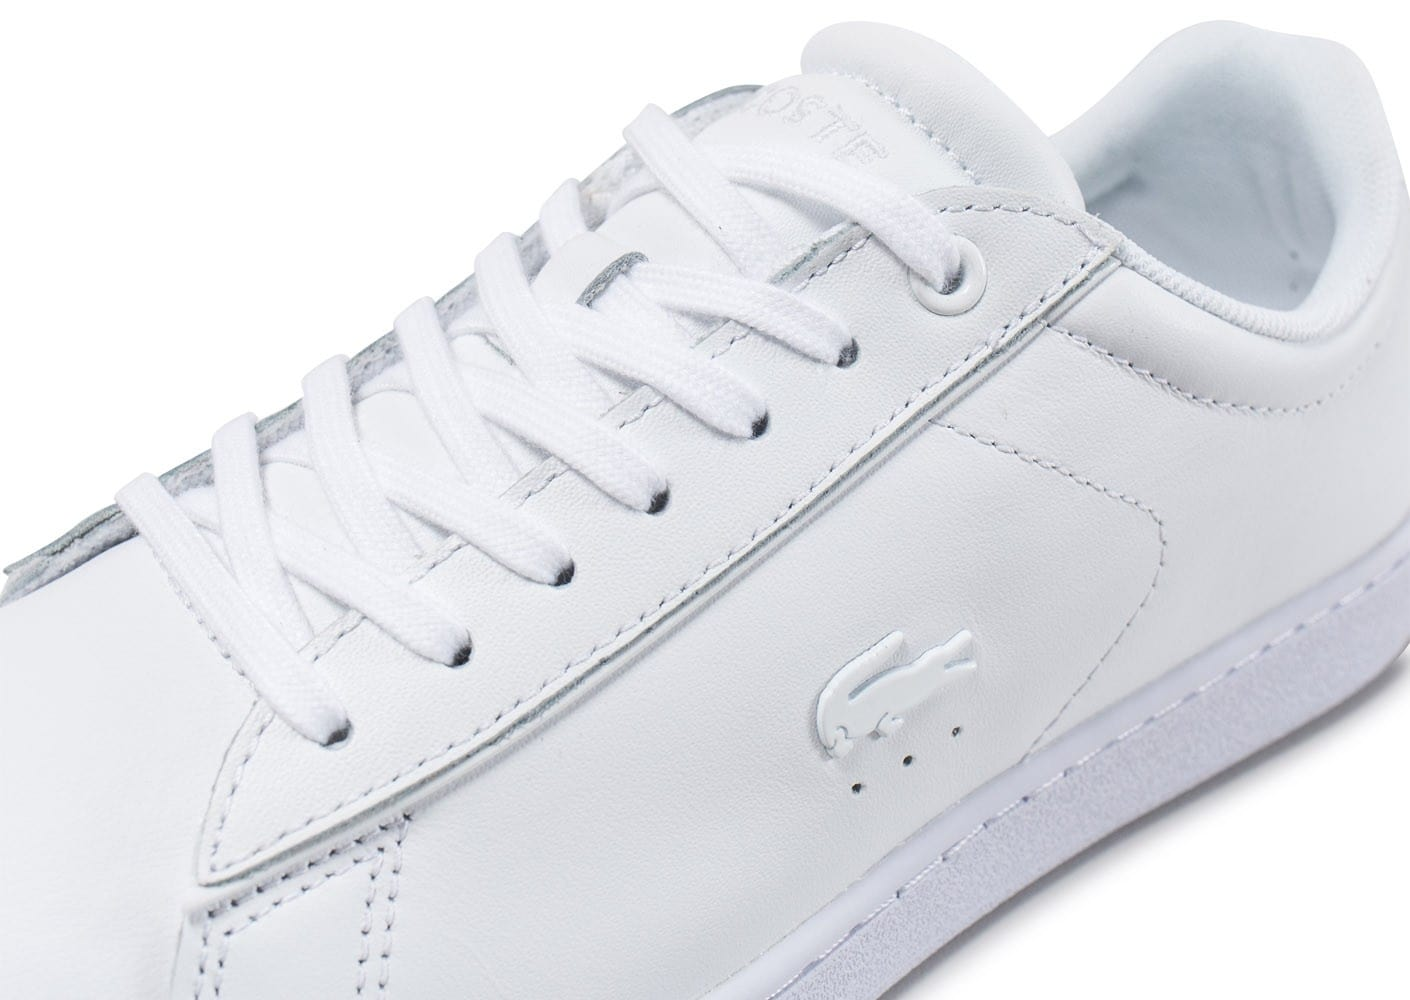 Chaussures Baskets Lacoste Carnaby Evo Spw Blanche 417 Femme dCxBeWQoEr